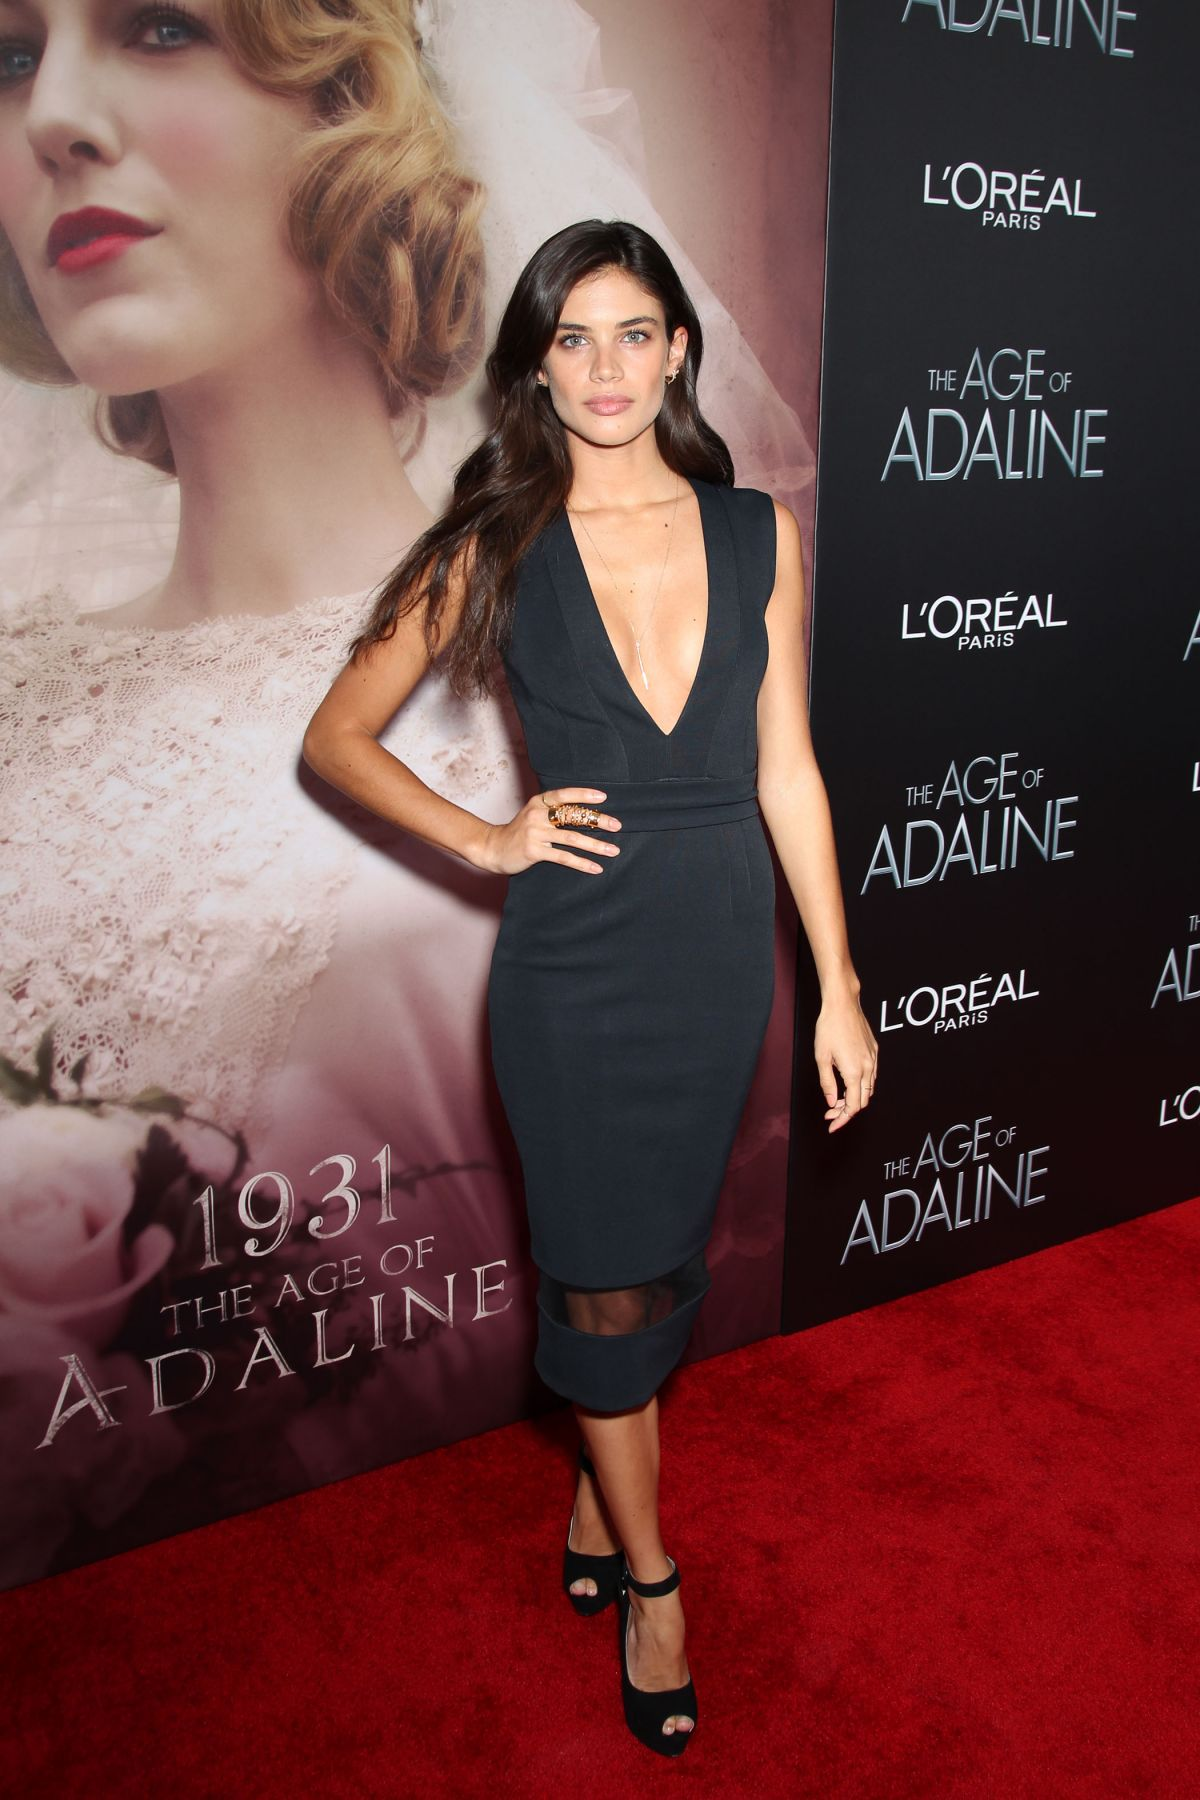 SARA SAMPAIO at The Age of Adaline Premiere in New York